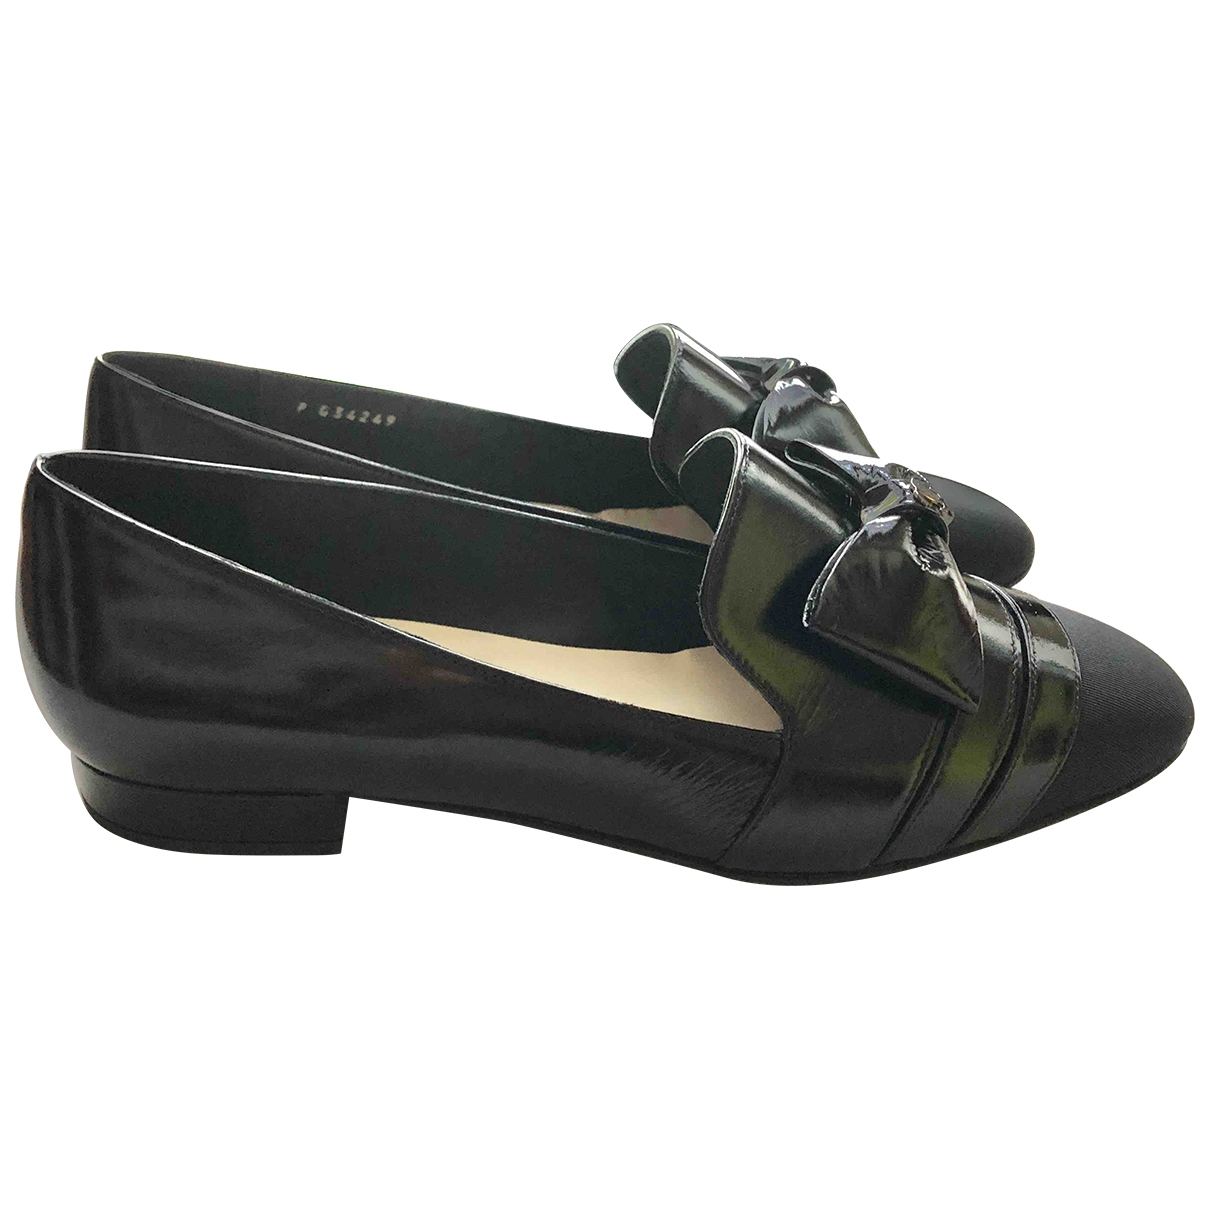 Chanel \N Black Leather Flats for Women 37.5 IT